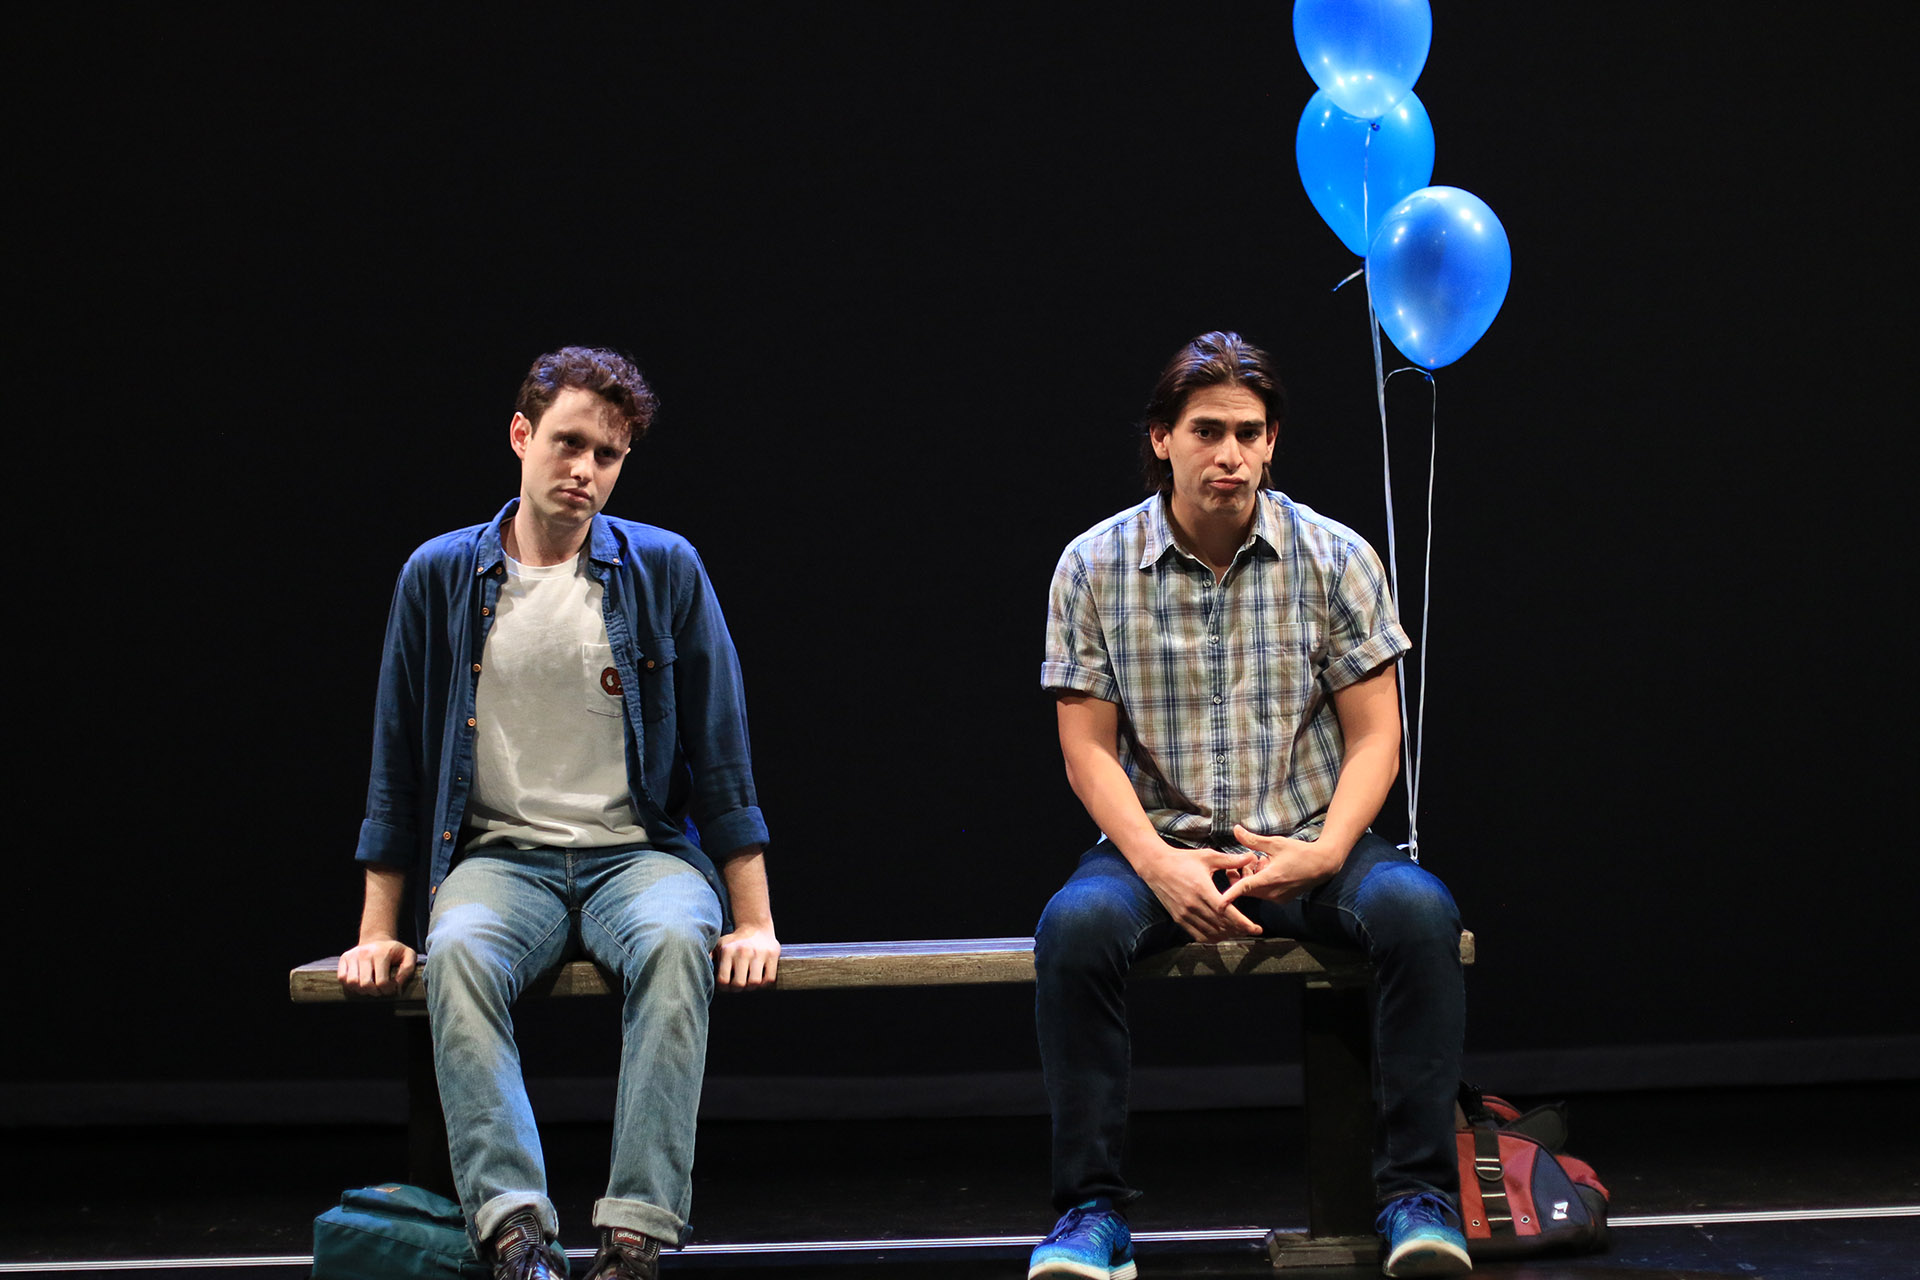 Patrick Foley ('18) and Arturo Soria ('19) in PERFECTLY TIMED PHOTOS TAKEN BEFORE A DISASTER by Alex Lubischer ('19), directed by Aneesha Kudtarkar ('19), dramaturgy by Michael Breslin ('19). Yale School of Drama, 2017. Photo by Elsa GibsonBraden ('20).